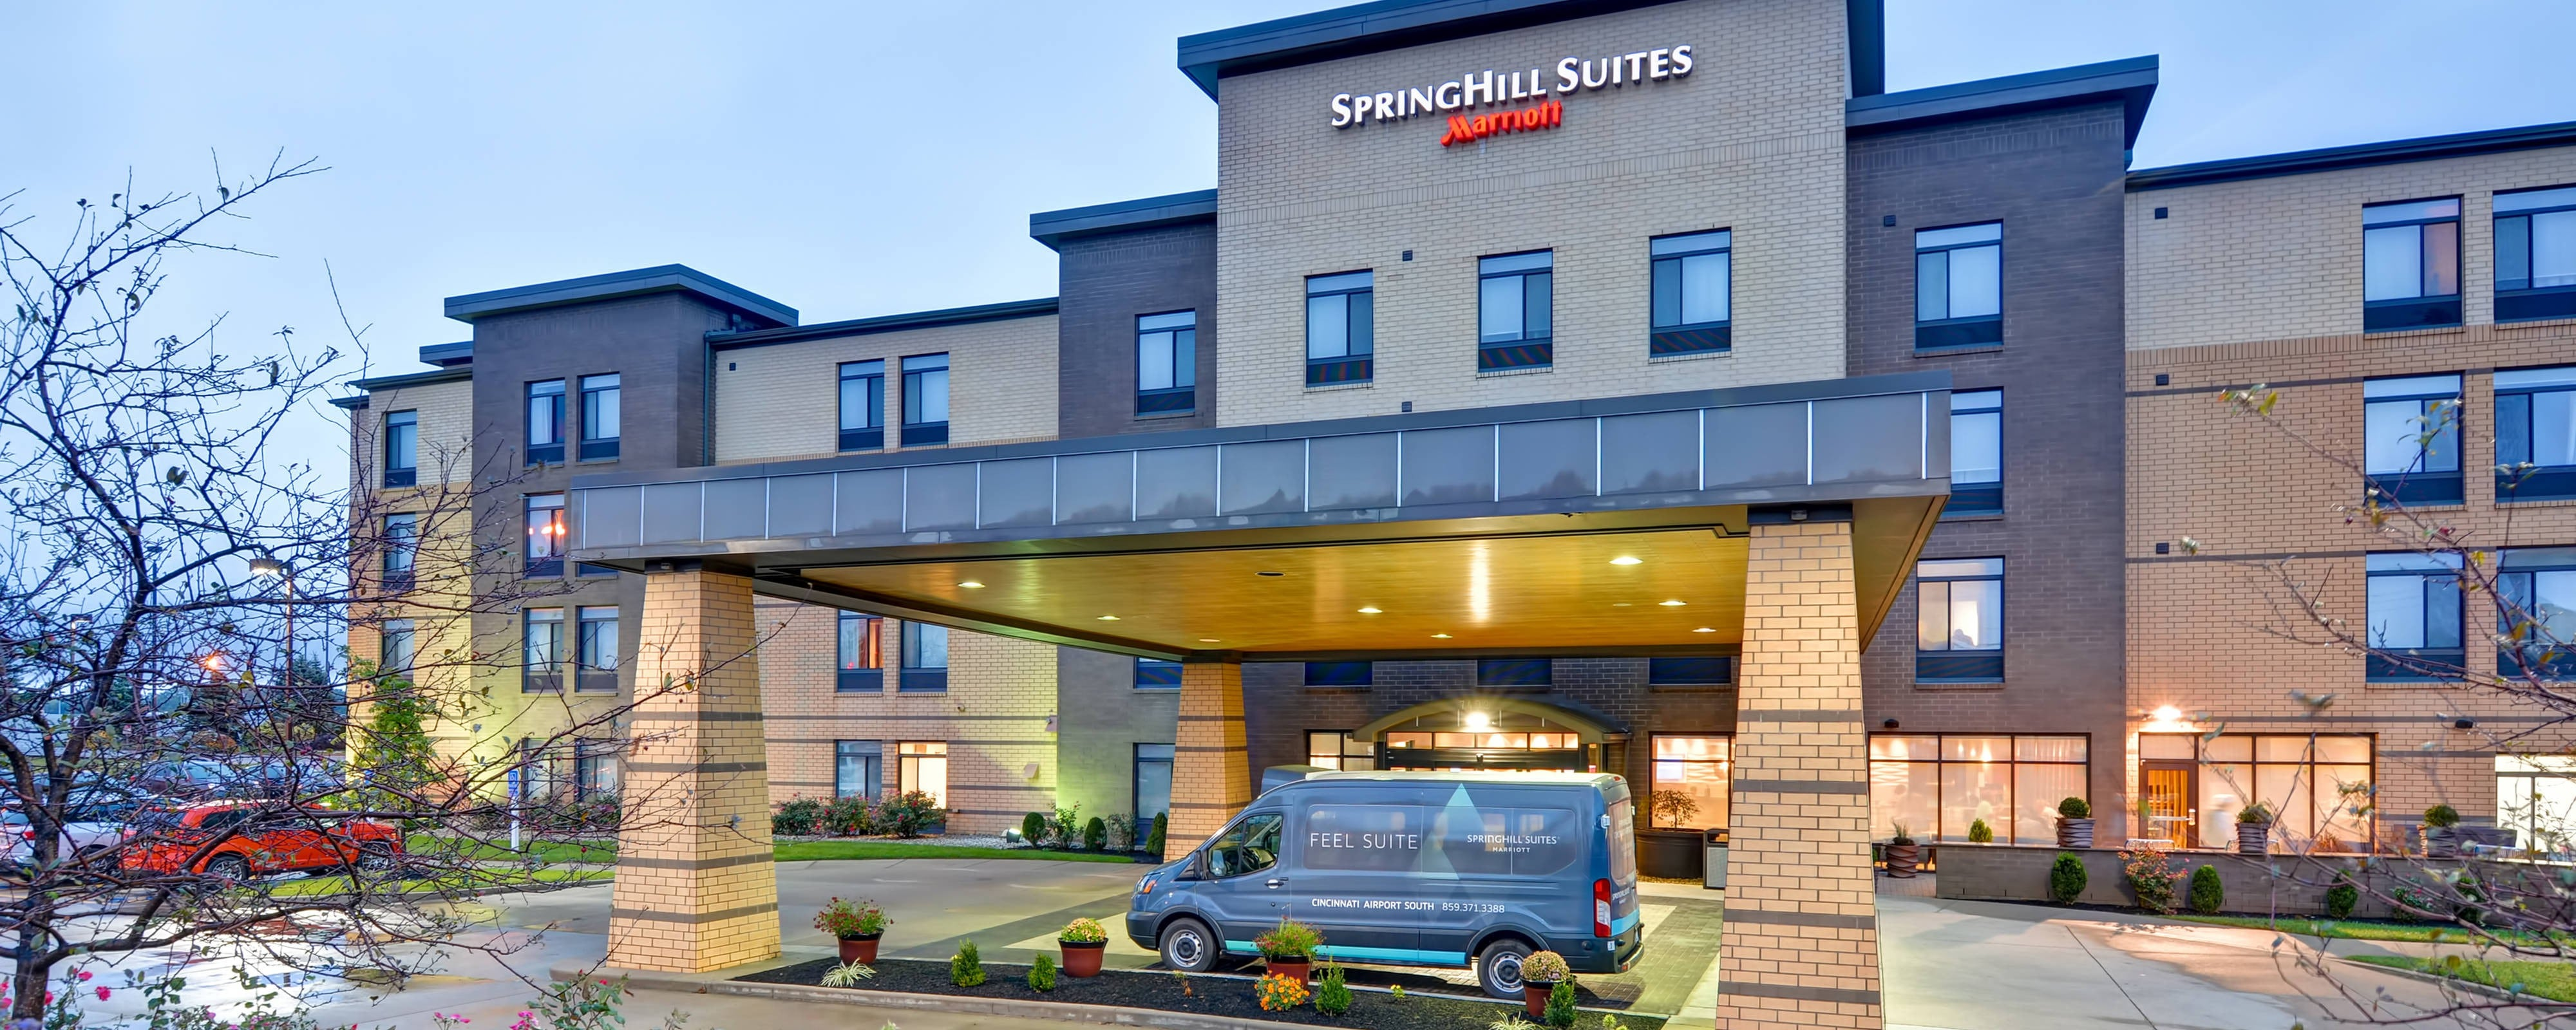 Hotel Near Cincinnati Airport Springhill Suites South An All In Florence Ky